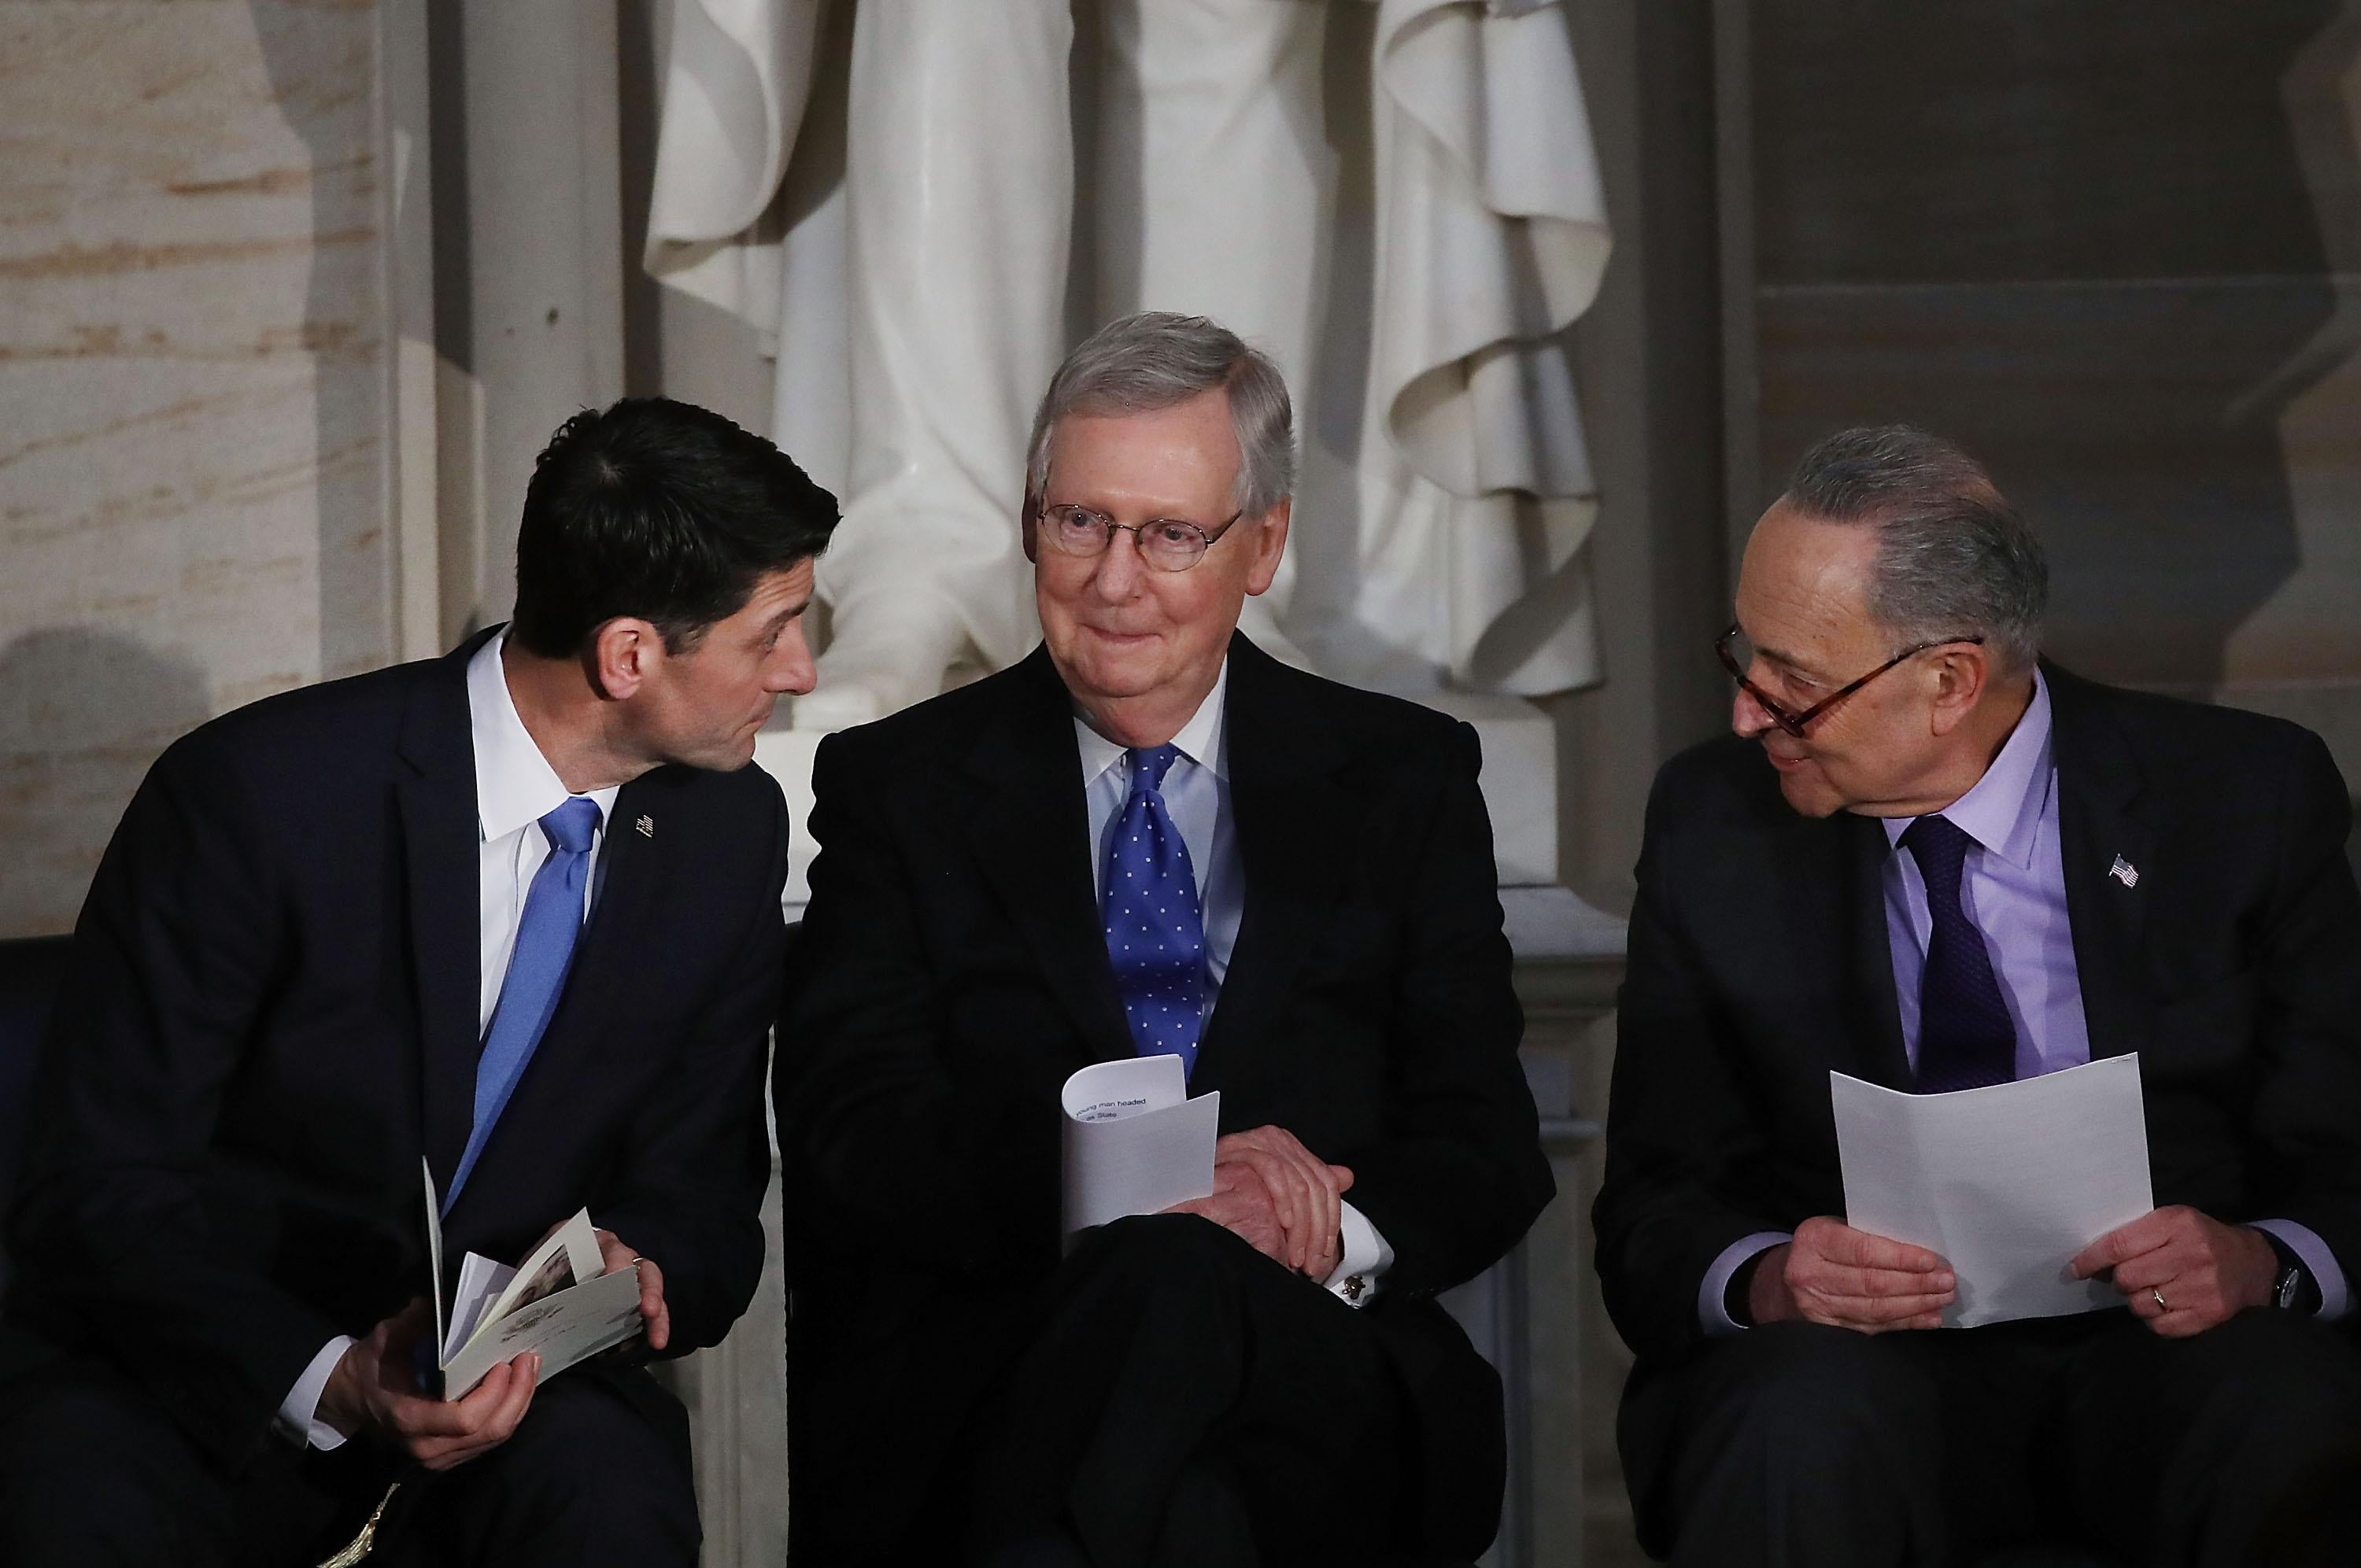 House Speaker Paul Ryan, Senate Majority Leader Mitch McConnell, and Senate Minority Leader Chuck Schumer.